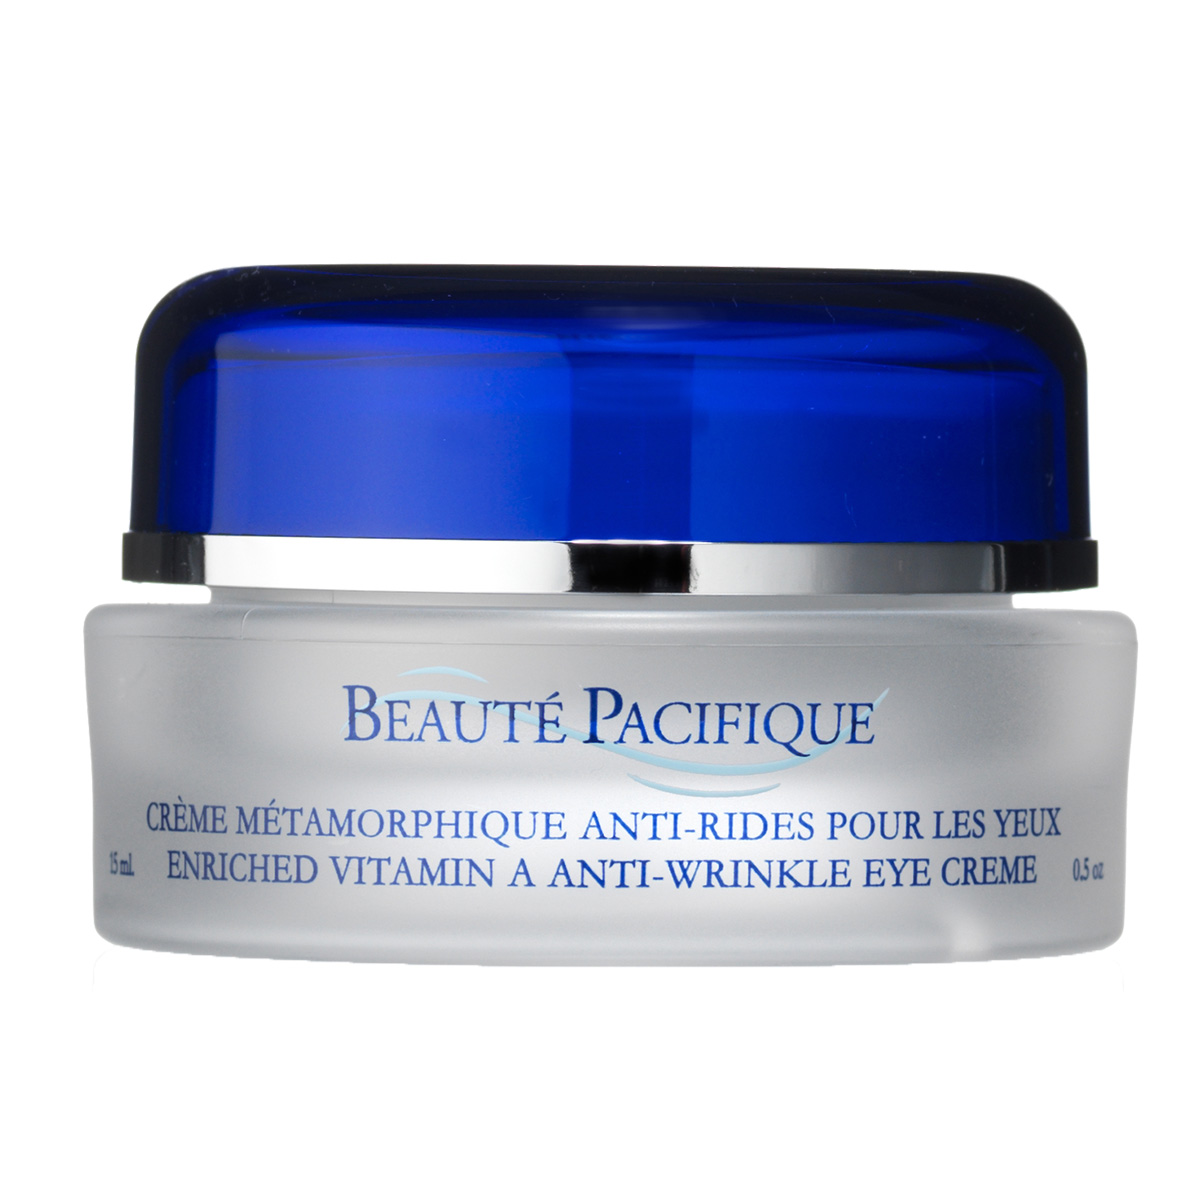 Beauté Pacifique A-vitamin øjencreme - 15 ml Opstrammende anti-age øjencreme til normal hud